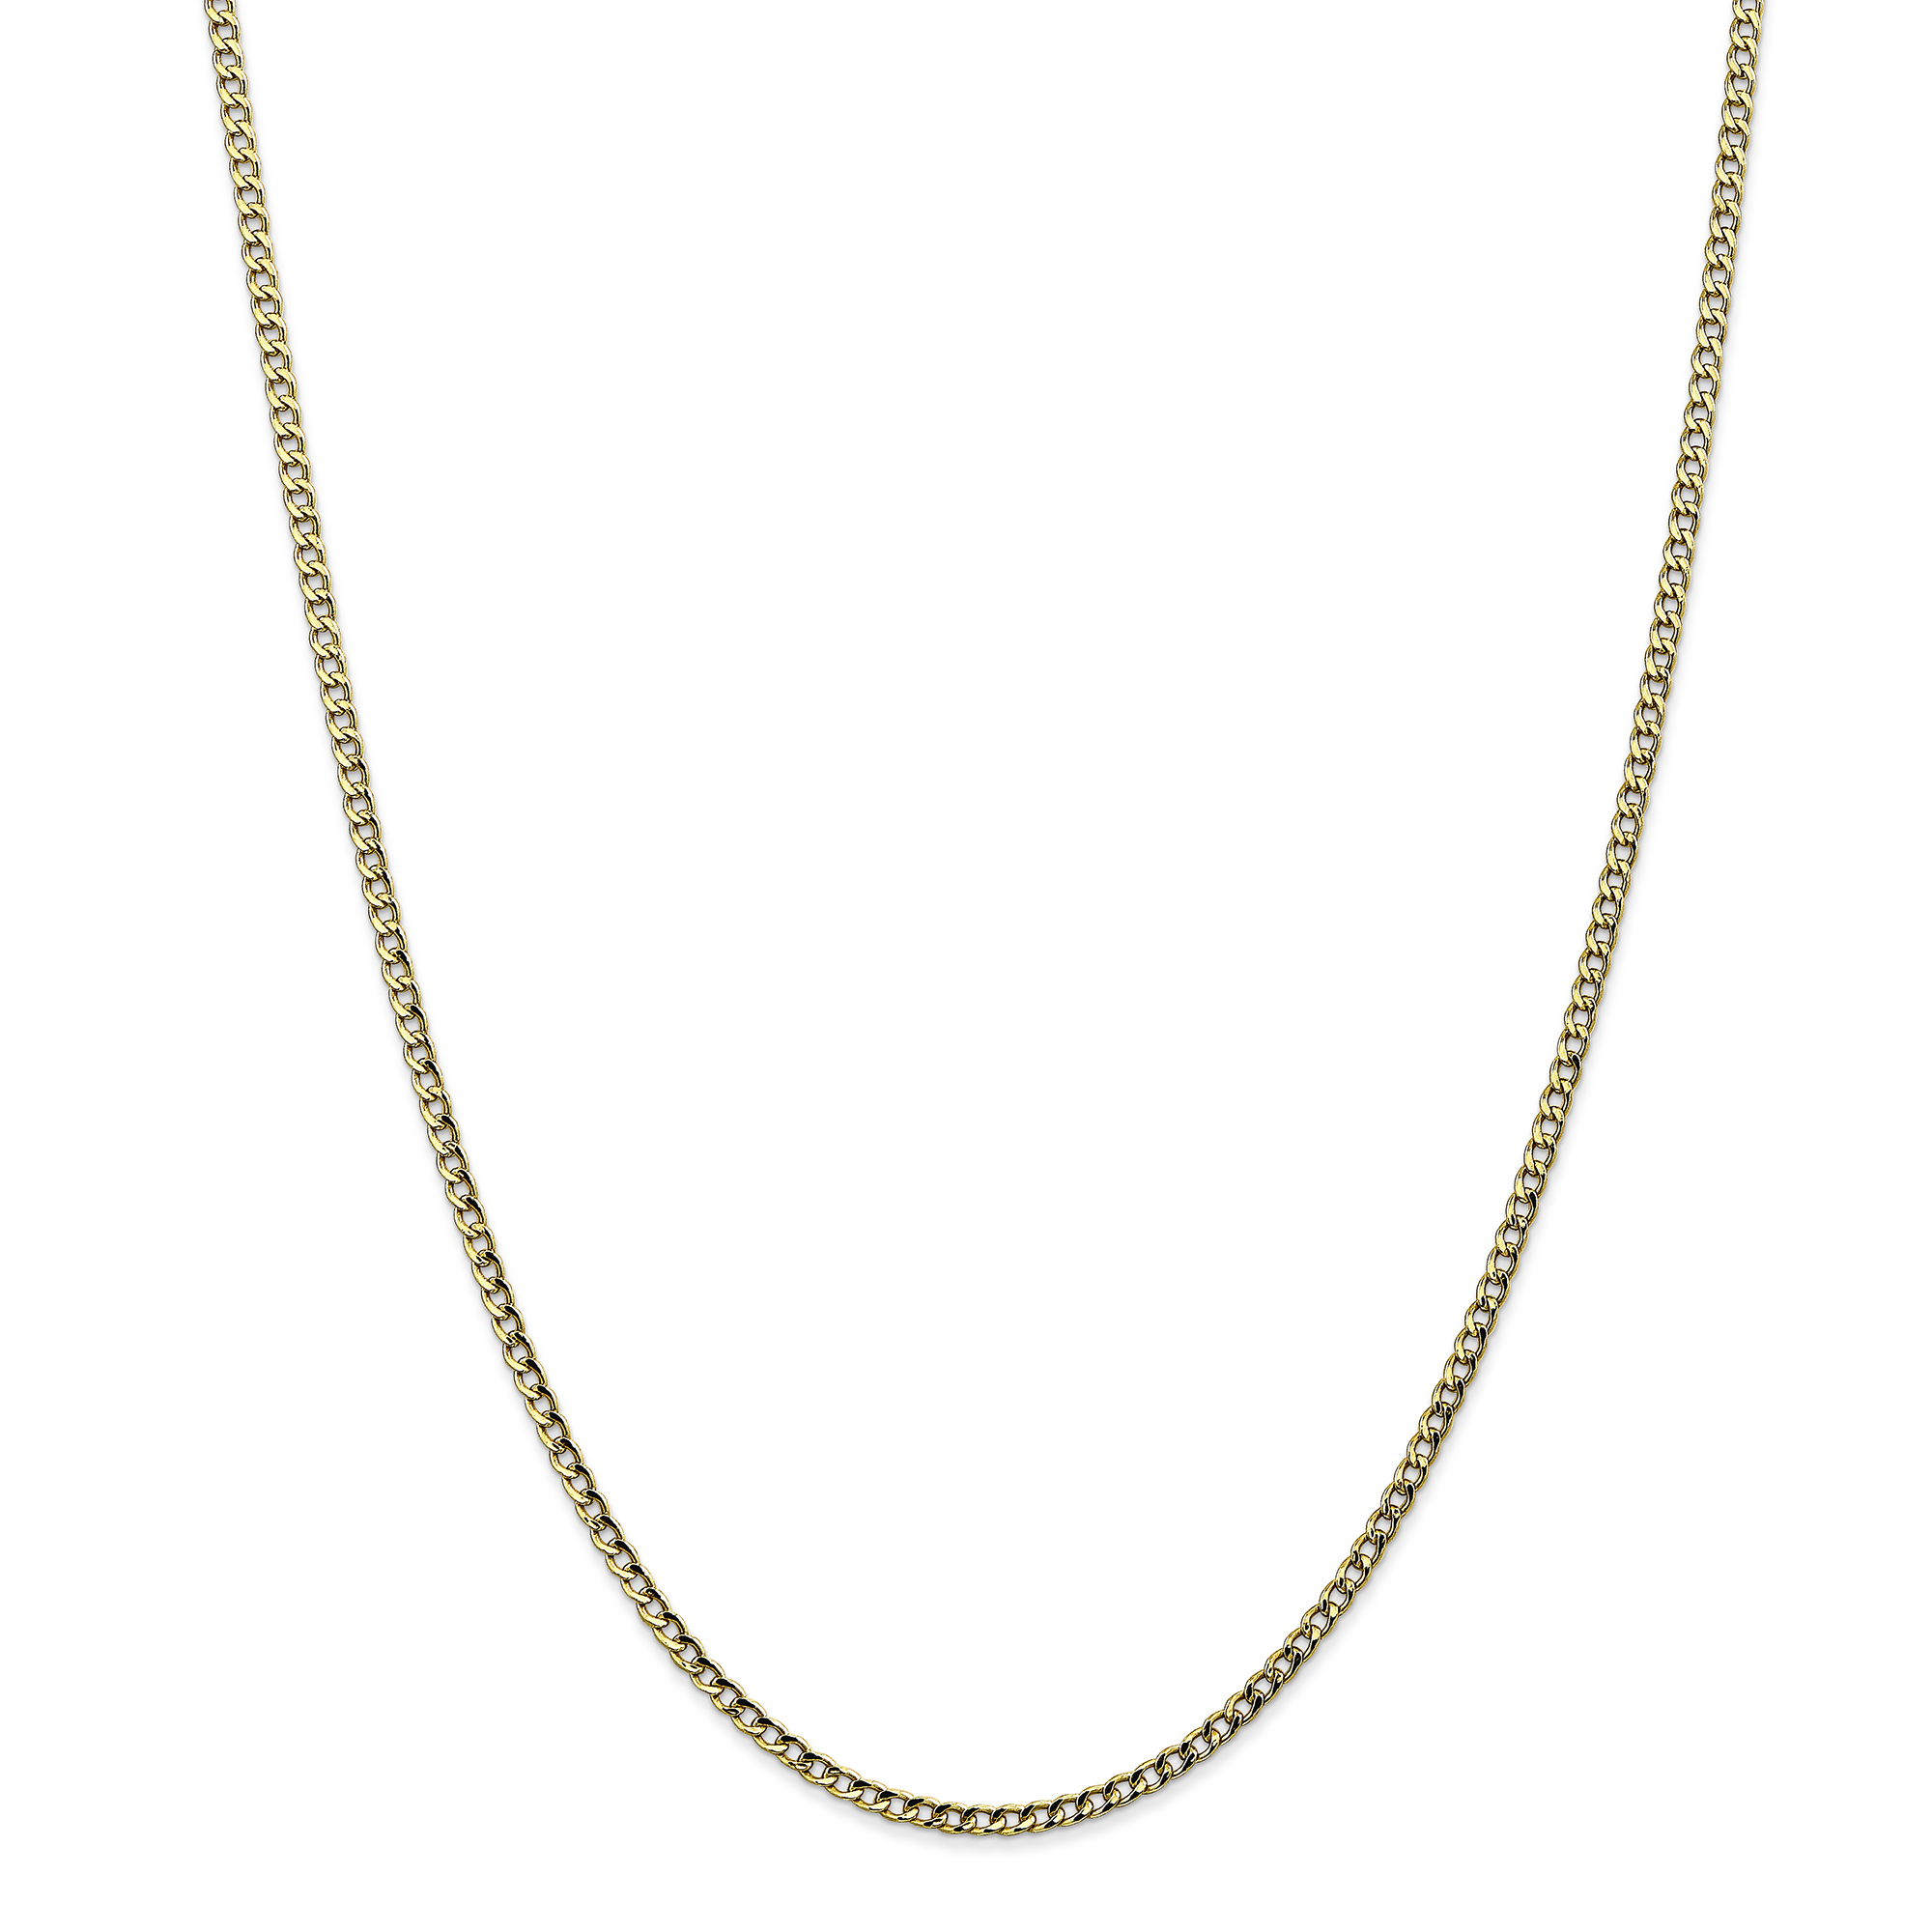 10K Yellow Gold 2.5mm Semi-Solid Curb Link Chain 24 IN - image 5 of 5